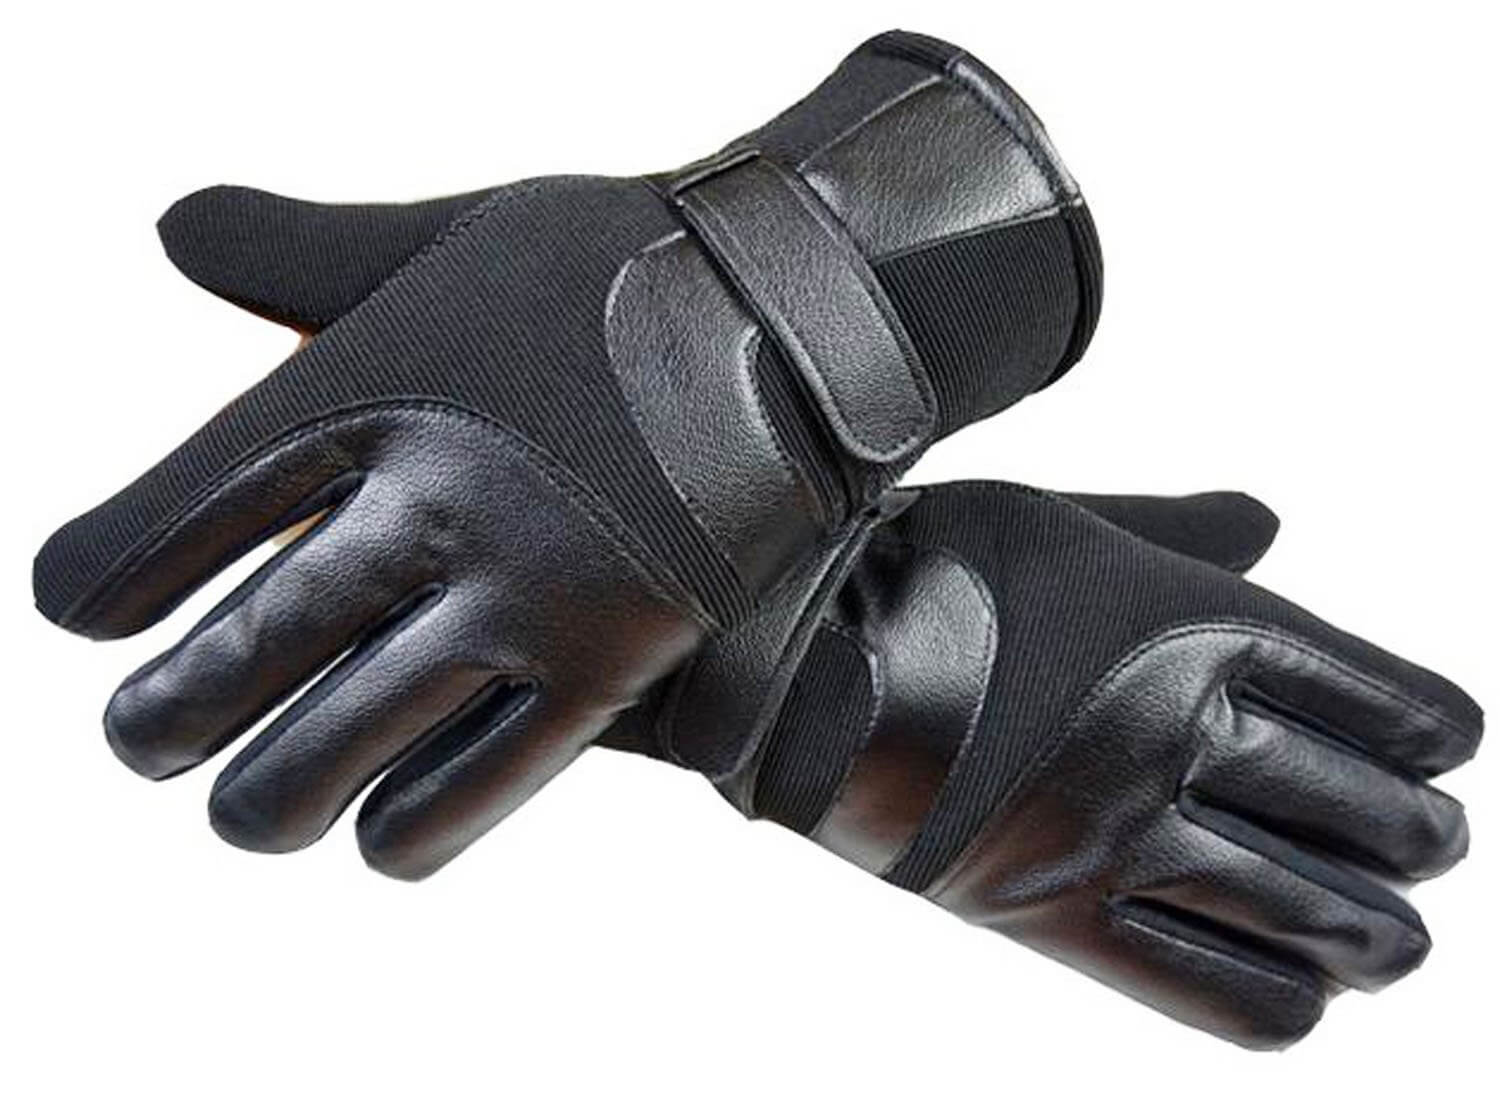 865fea4739 10 Best Touchscreen Gloves Reviewed & Compared   RunnerClick